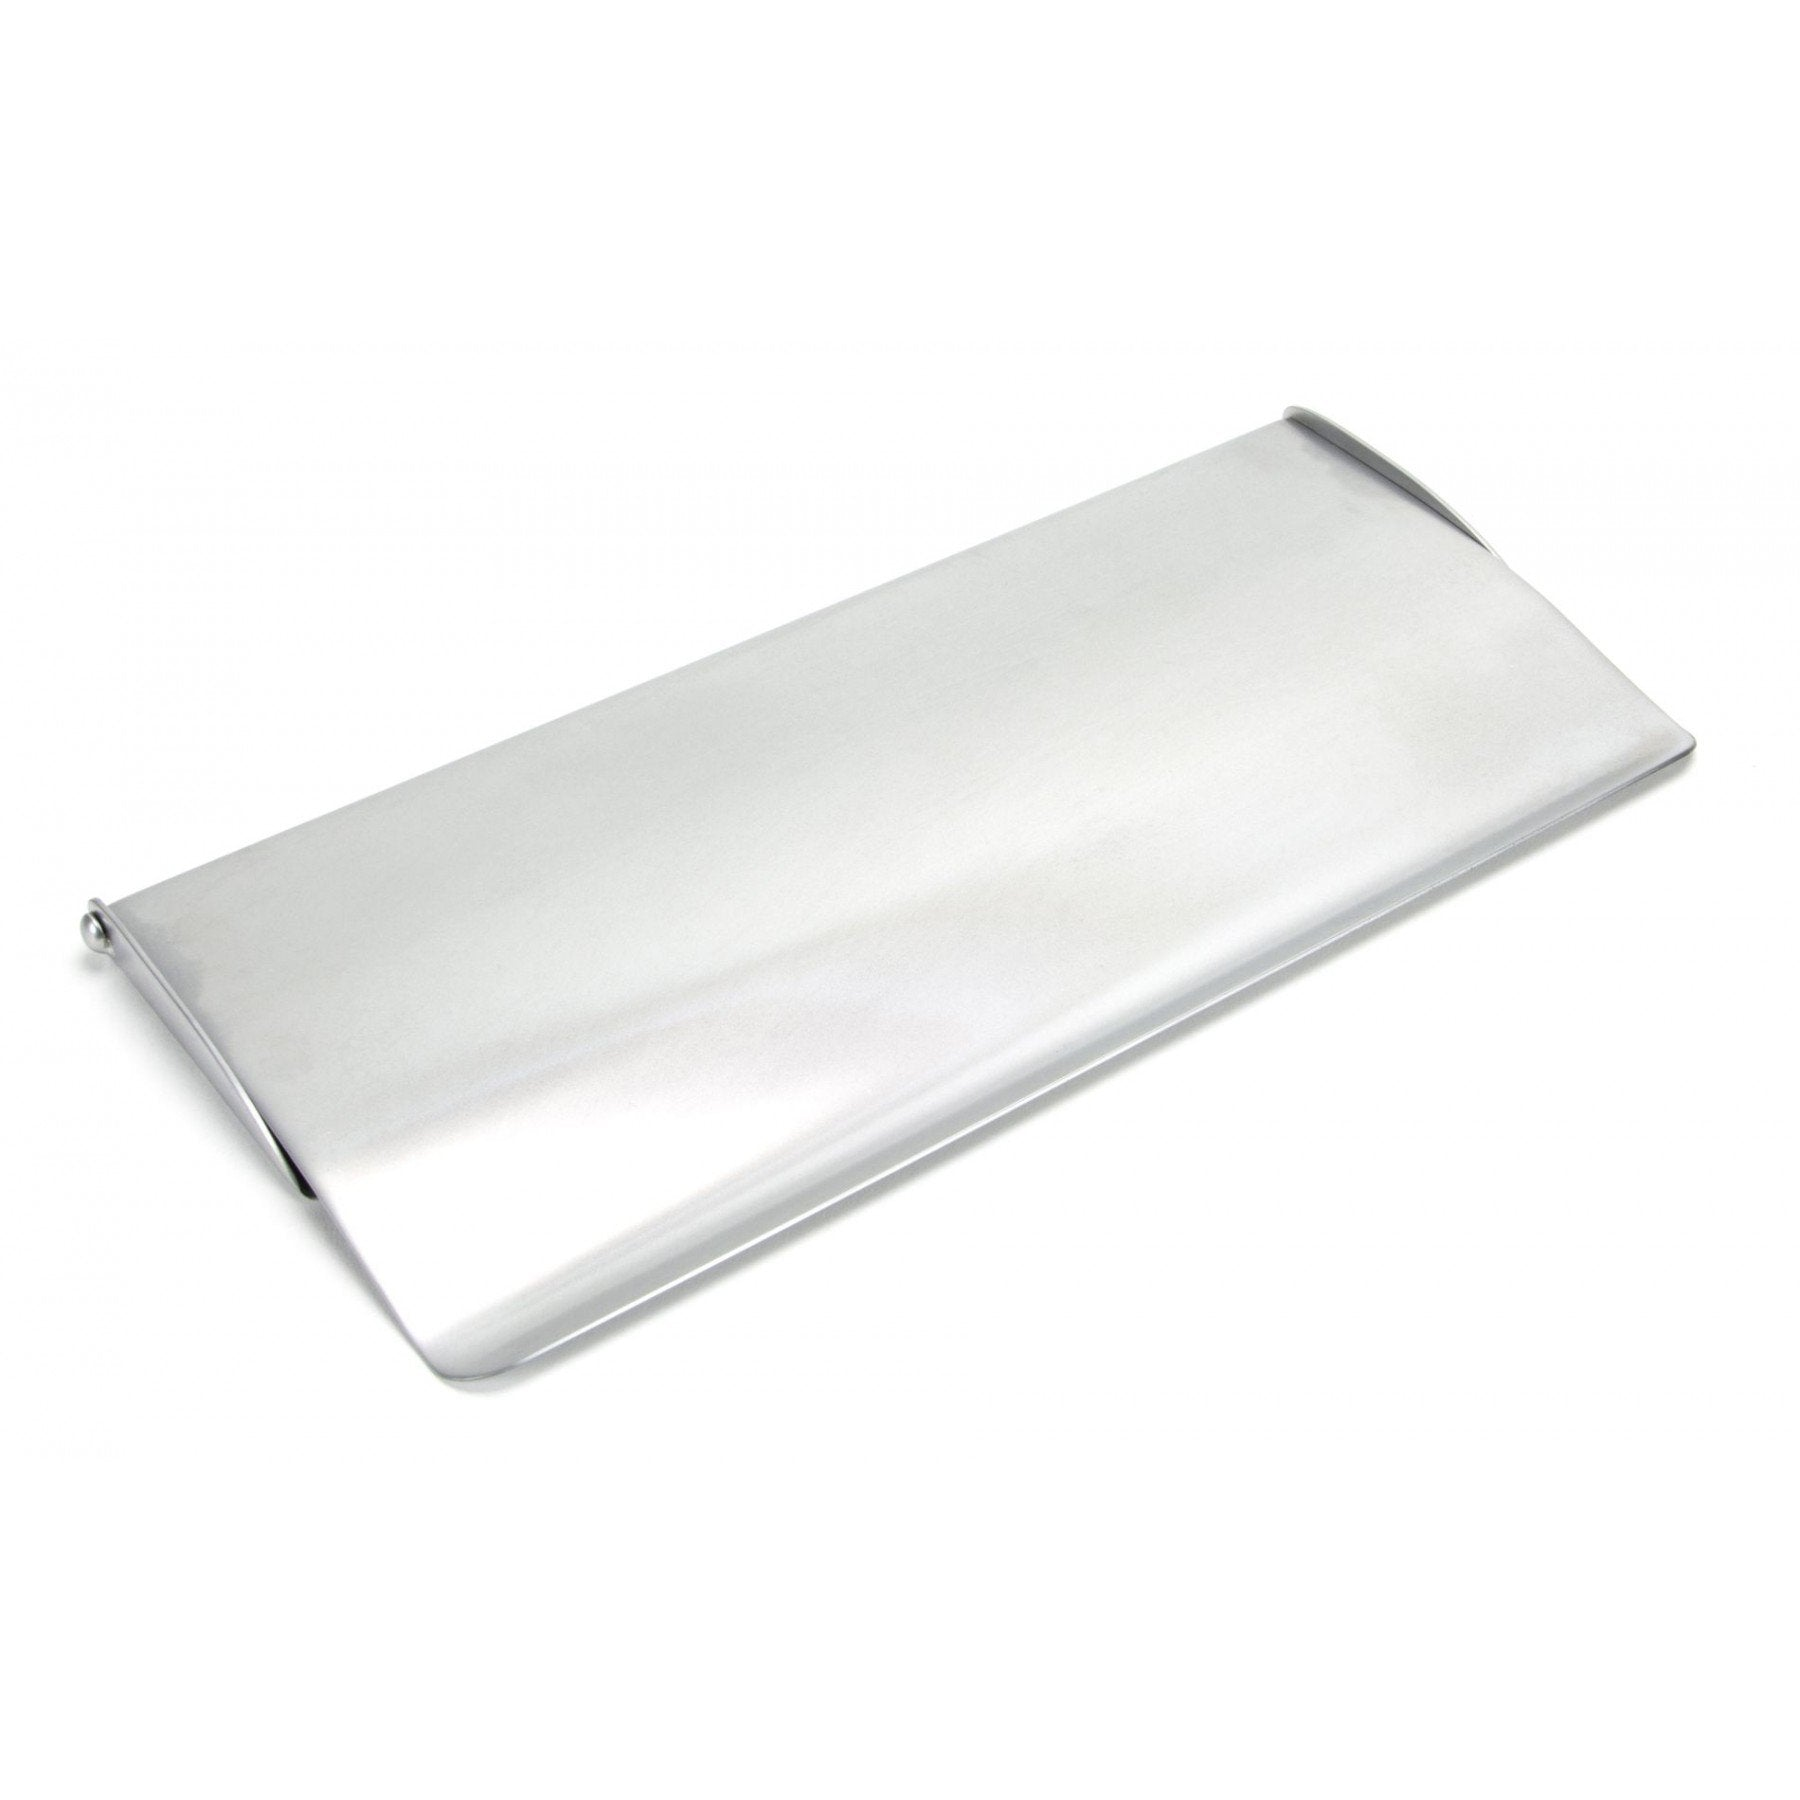 Satin Chrome Small Letter Plate Cover - No.42 Interiors